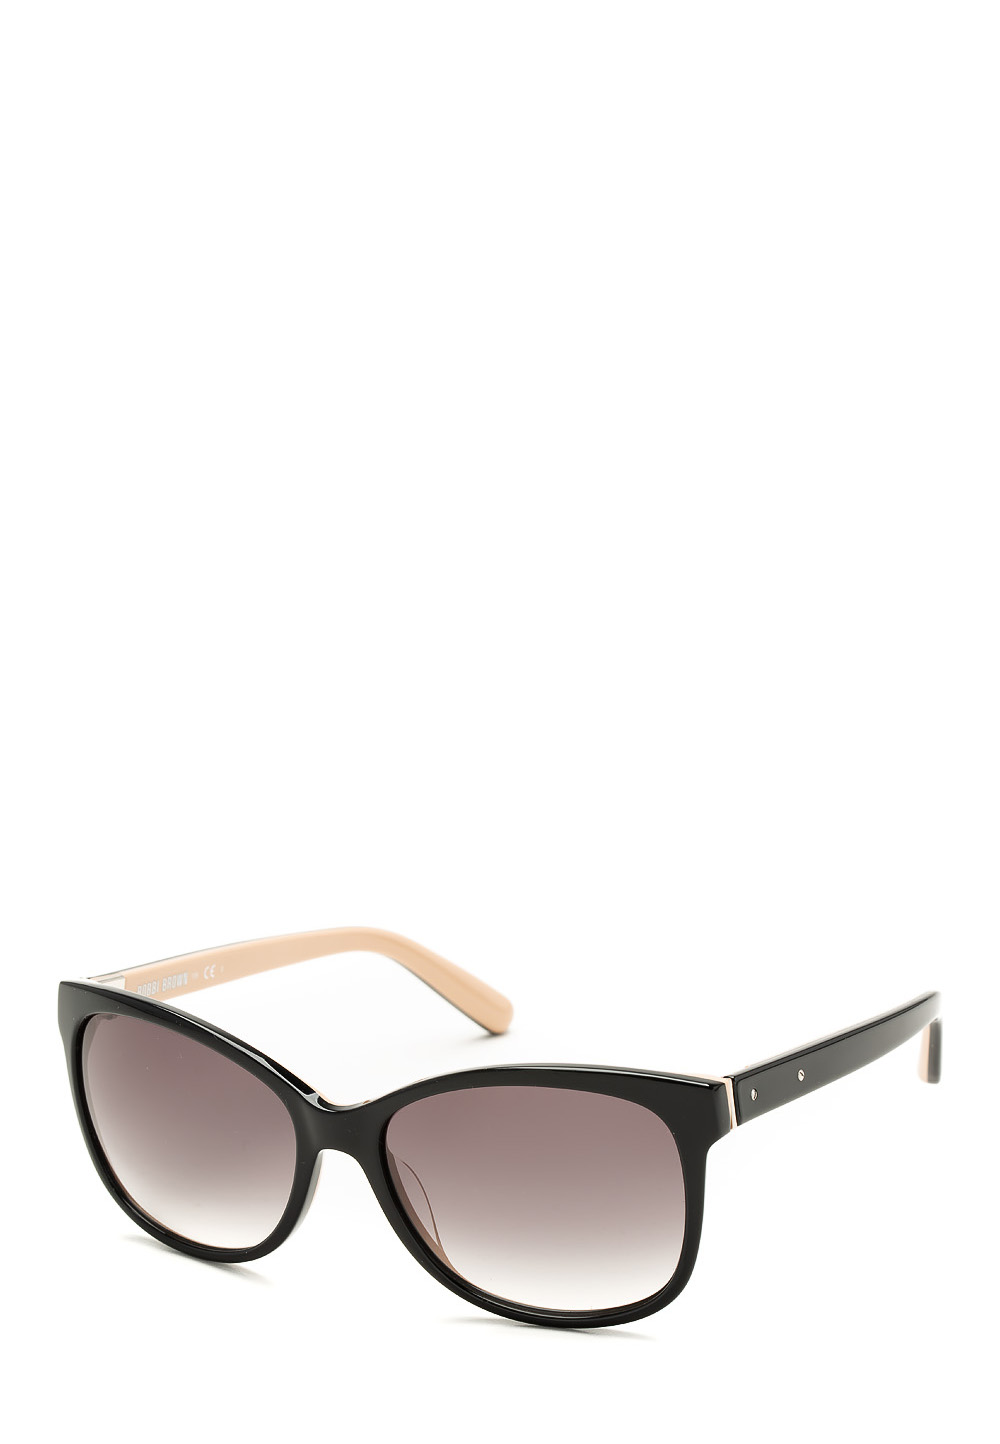 Bobbi Brown Sonnenbrille The Rose, UV 400, schwarz/beige